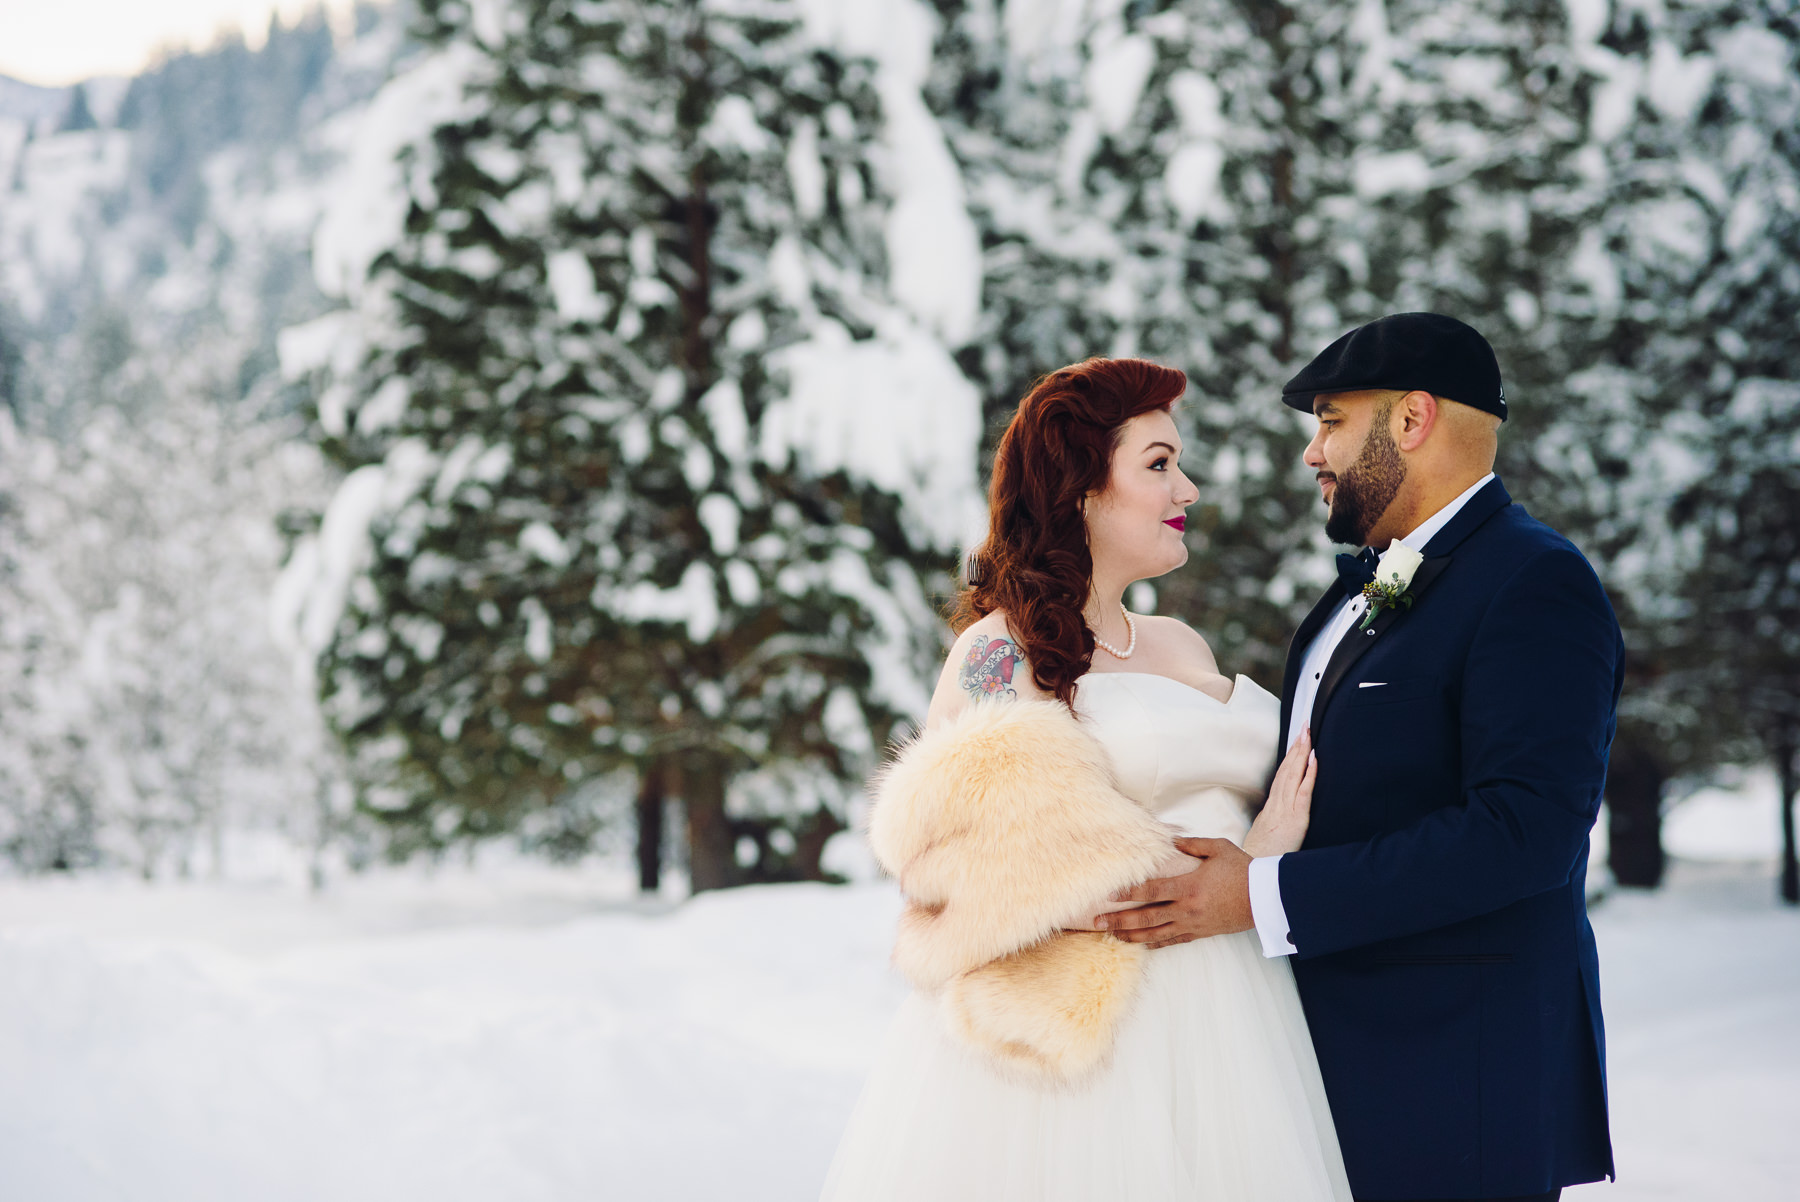 winter wedding venue portrait